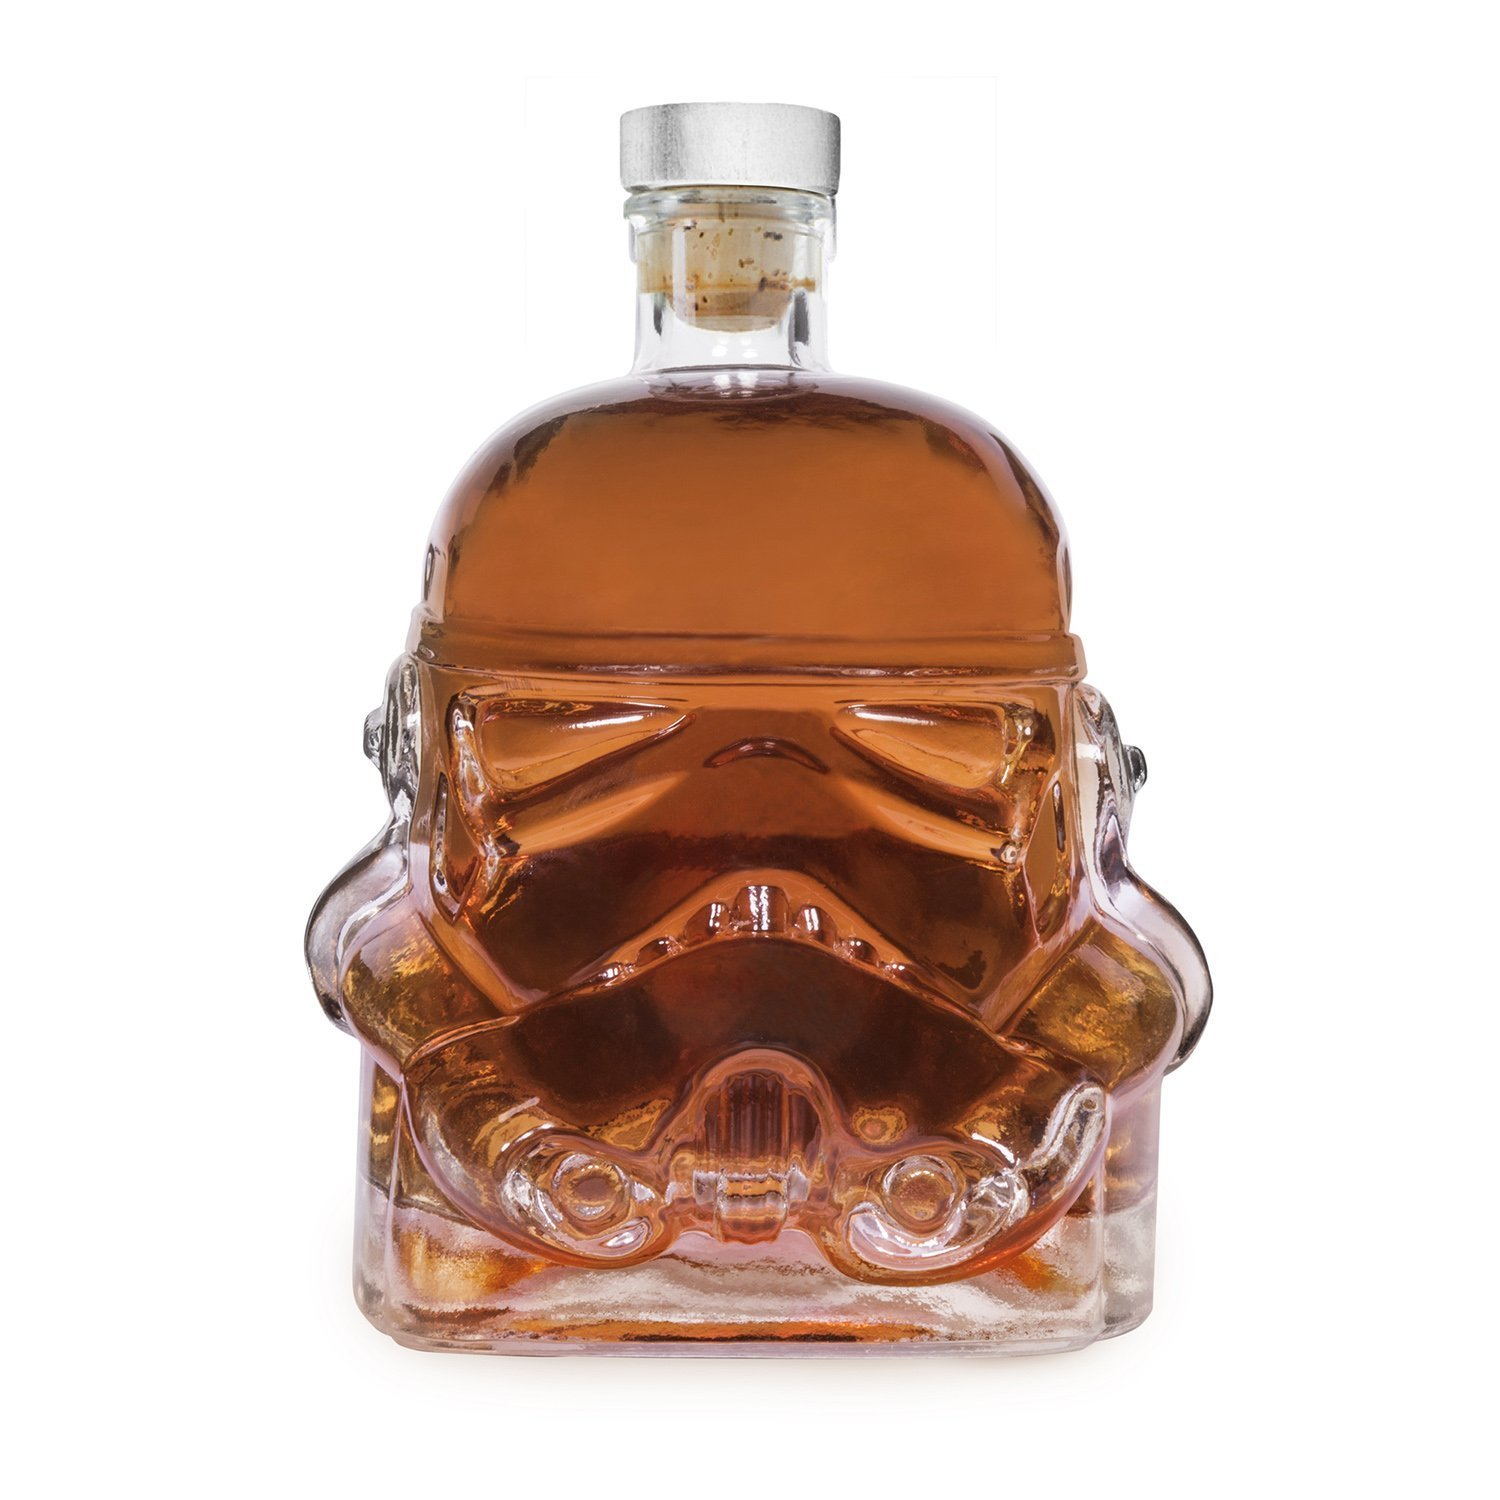 AUTHOME Transparent Creative 700ml Whiskey Flask Carafe Decanter,Stormtrooper Bottle ,Whiskey Carafe,Helmet Glass Cup Heat-Resistance CupSuitable for Whiskey, Vodka and Wine decanter by AUTHOME